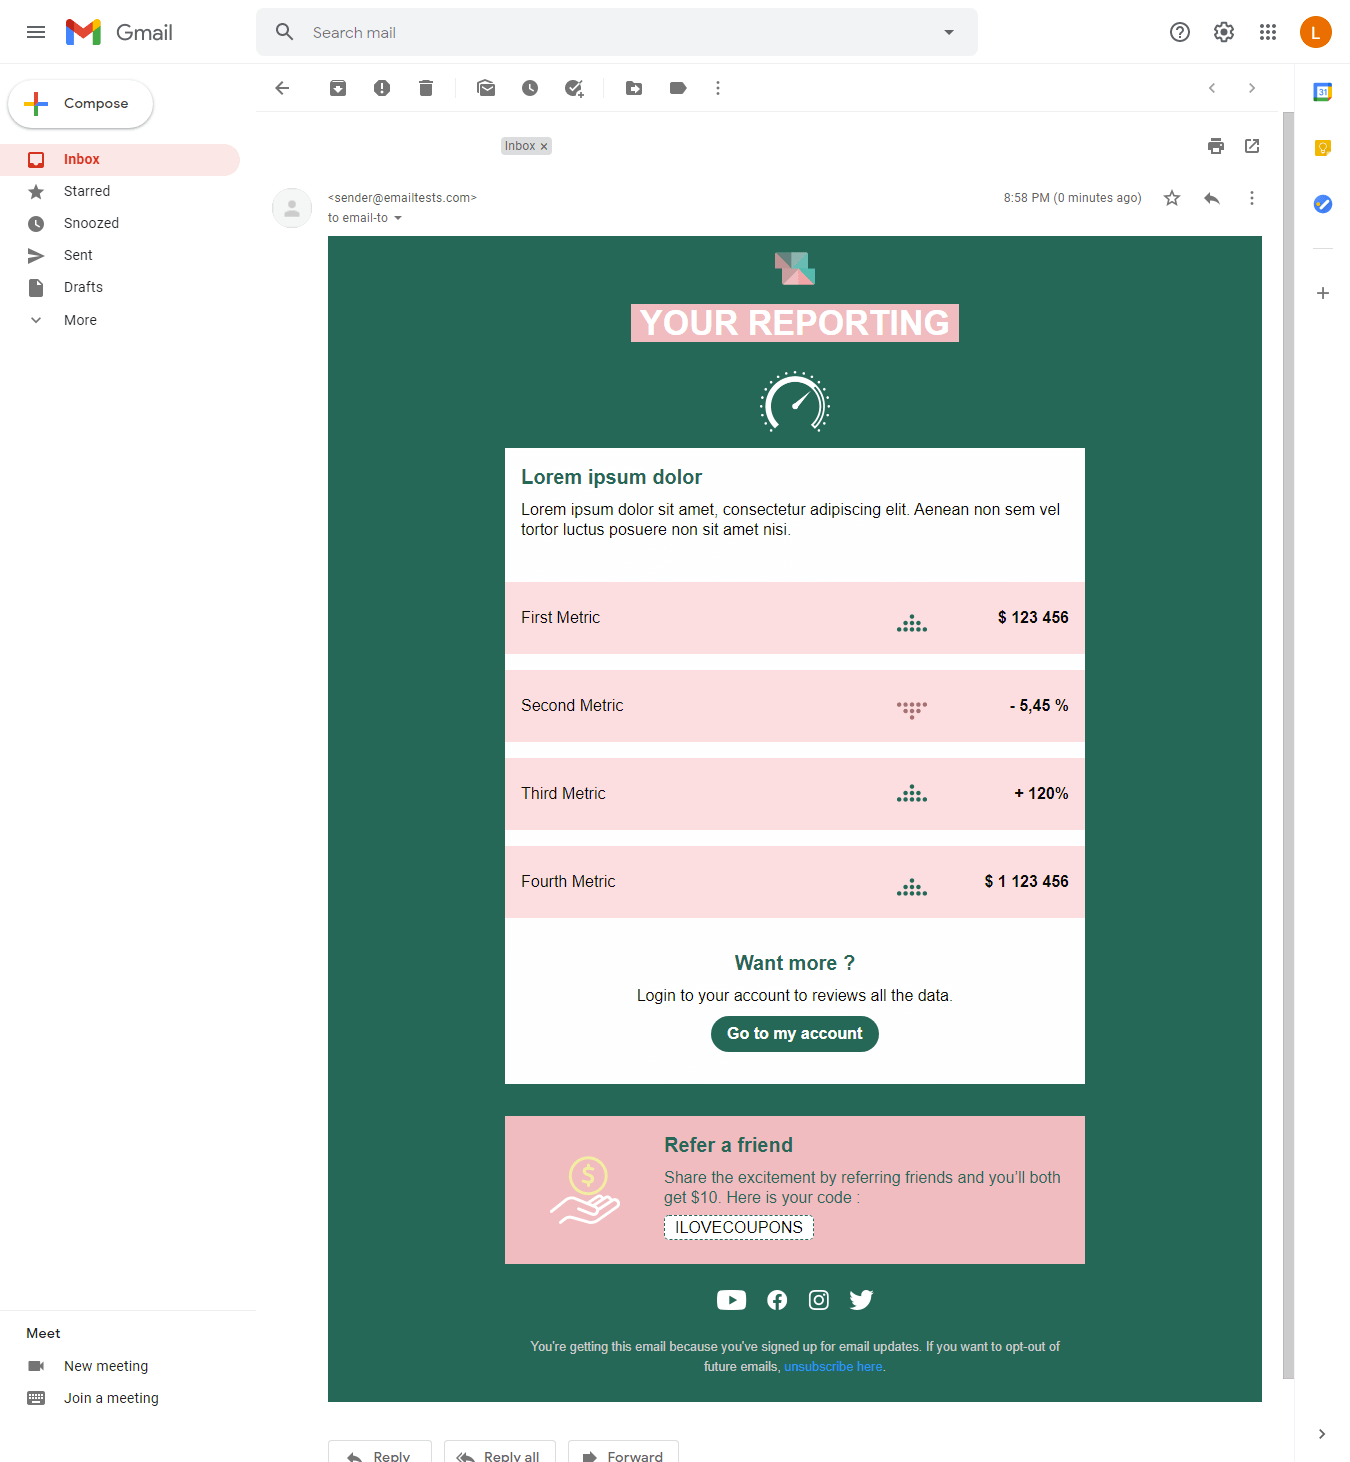 Screenshot of Squared reporting email display on Gmail